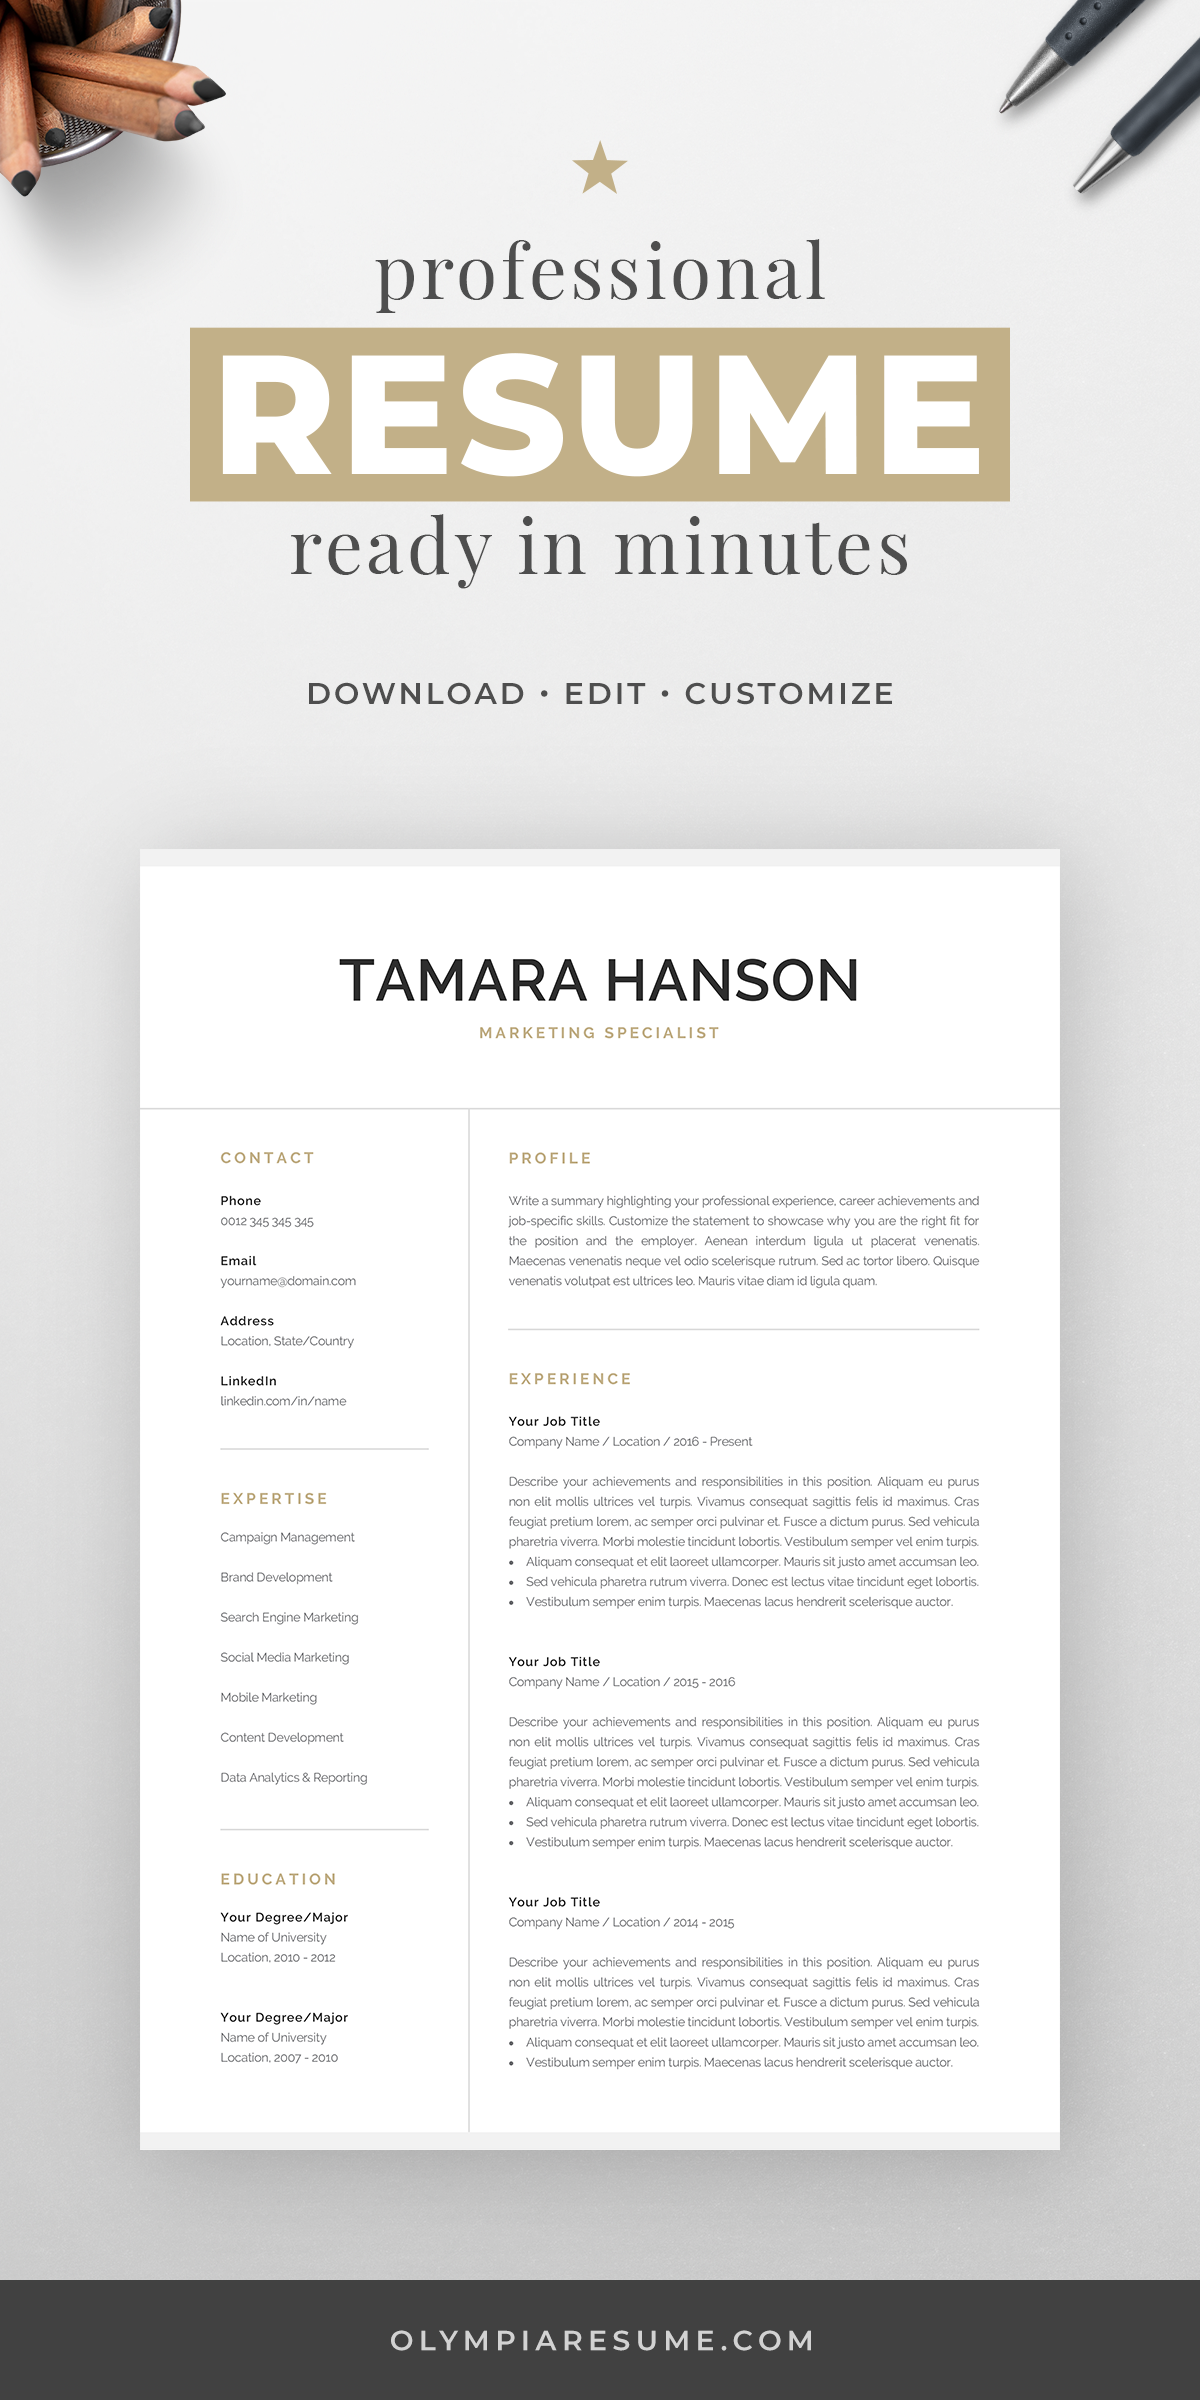 Professional 1 2 Page Resume Template Modern Cv Design Word Mac Pages Resume Template Resume Template Professional Modern Resume Template